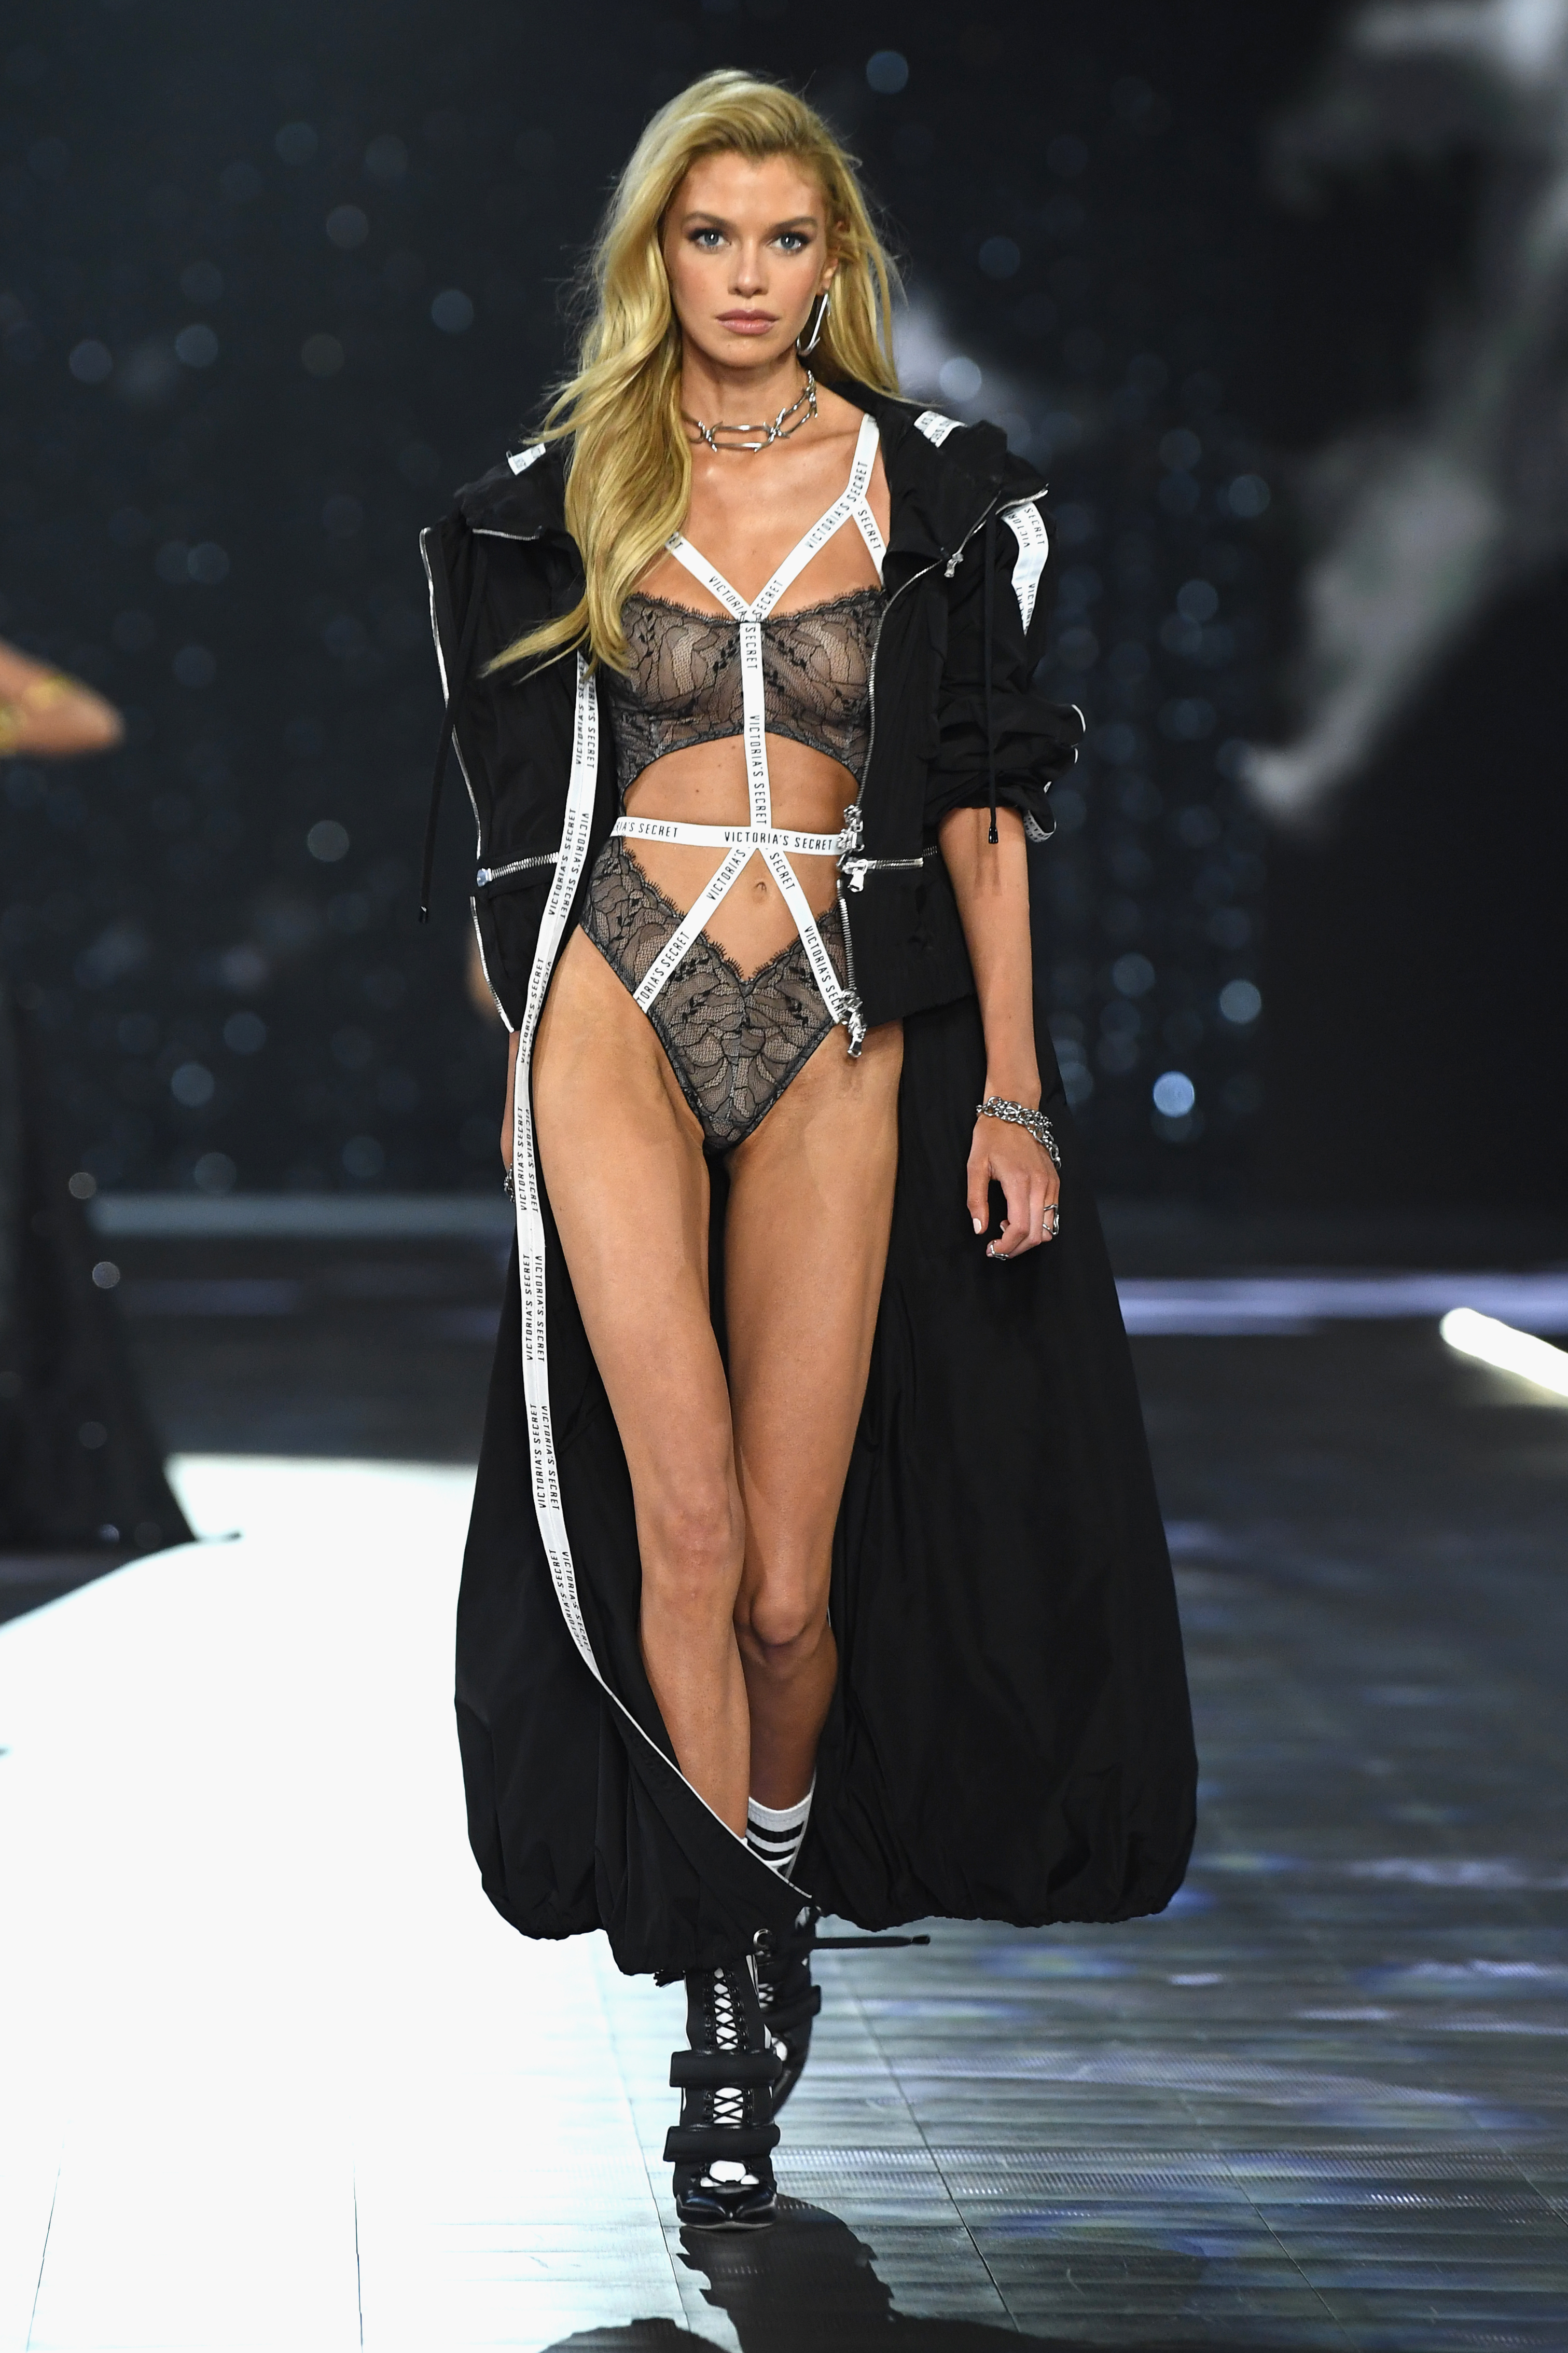 Stella Maxwell walks the runway during the 2018 Victoria's Secret Fashion Show at Pier 94 on November 8, 2018, in New York City. (Getty Images)